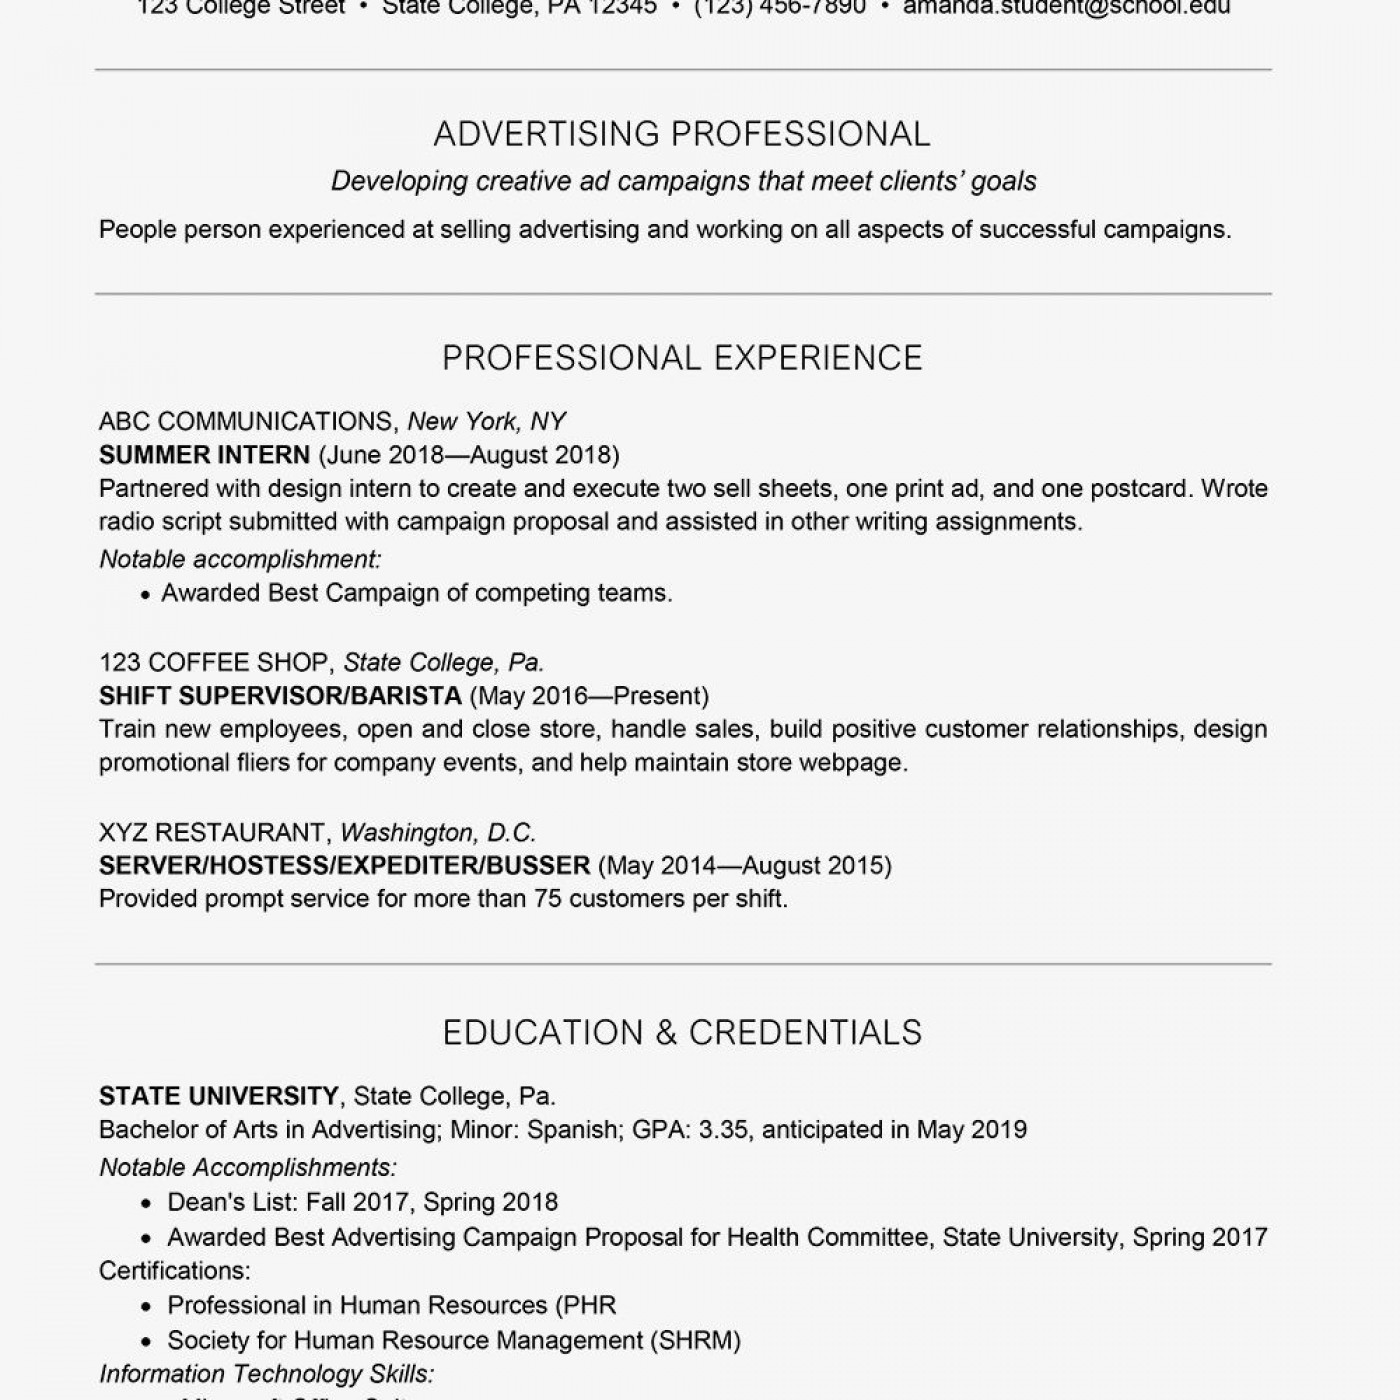 002 Amazing College Graduate Resume Template Highest Quality  Student Example 2020 New 20181400